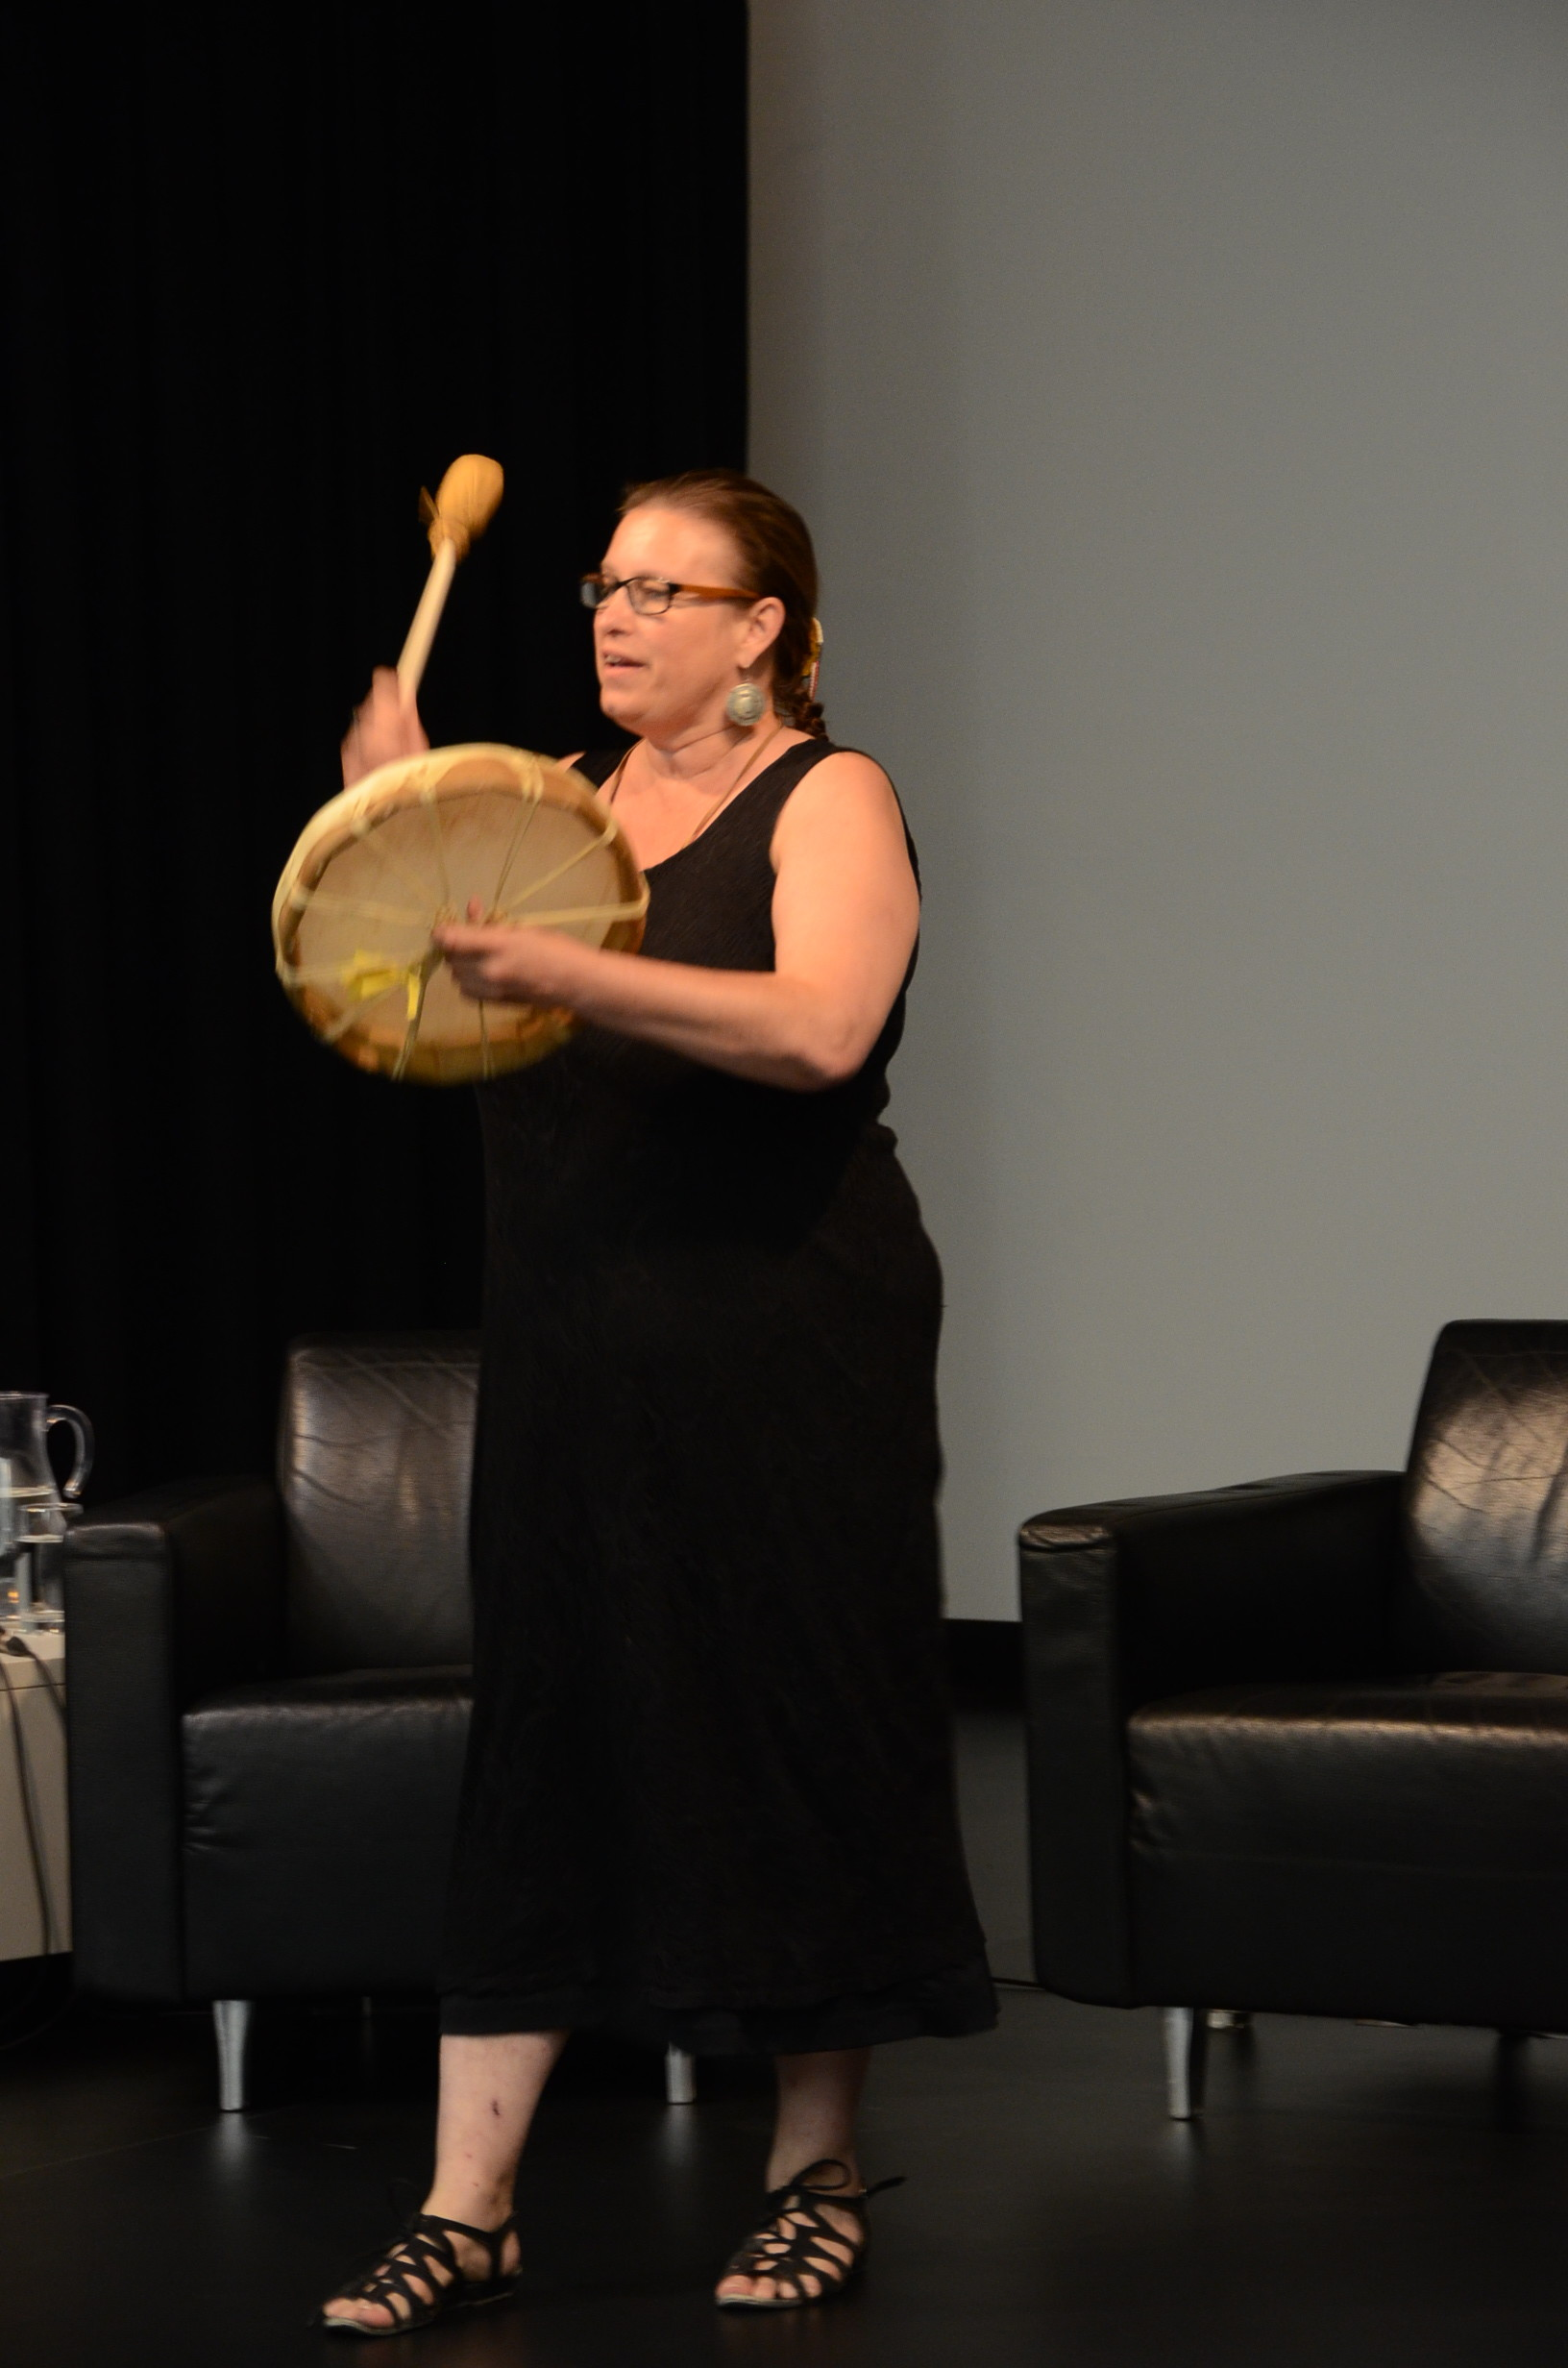 Aboriginal drummer Heather Majuary closed the event with drumming in honour of incarcerated Aboriginal lands.